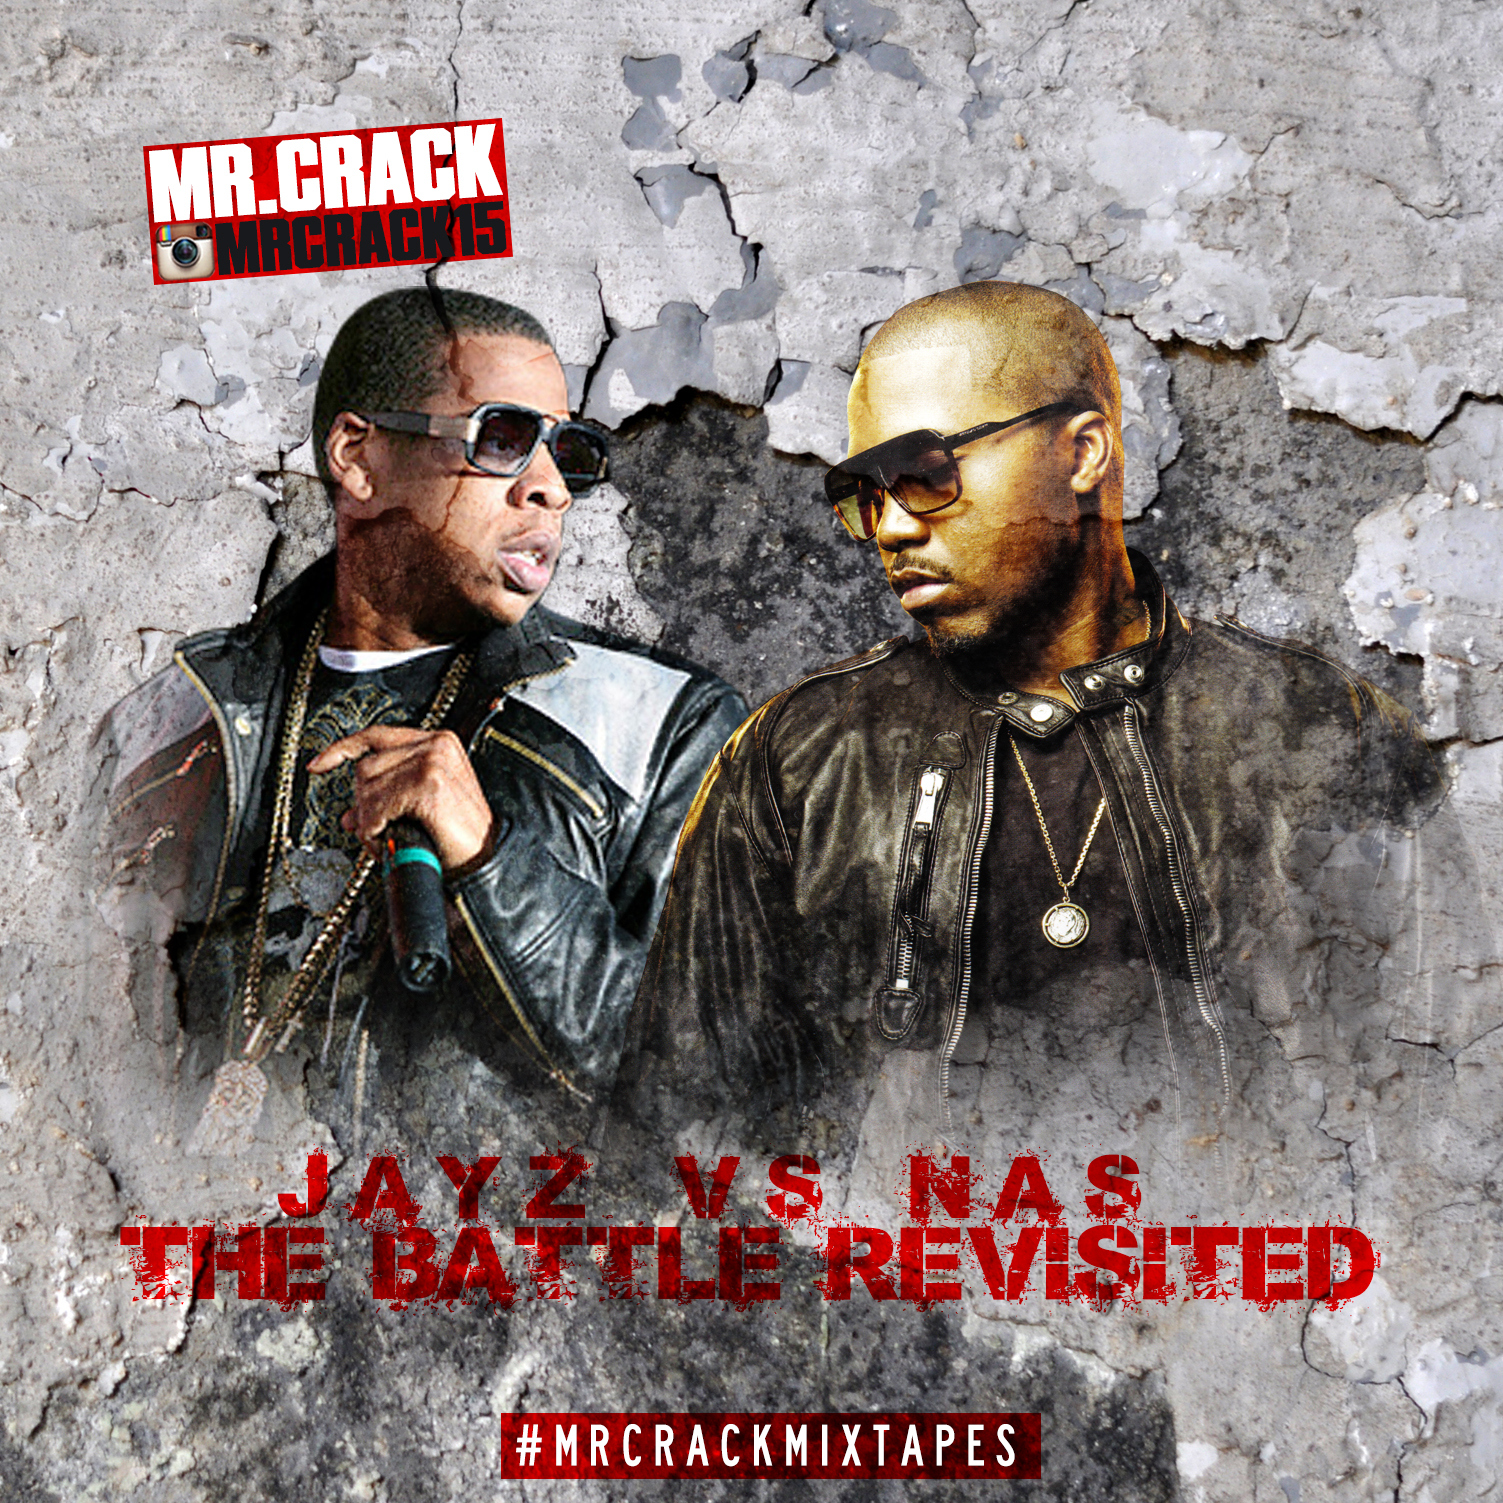 Mr crack nas vs jay z the battle revisited buymixtapes nas vs jay z the battle revisited malvernweather Image collections